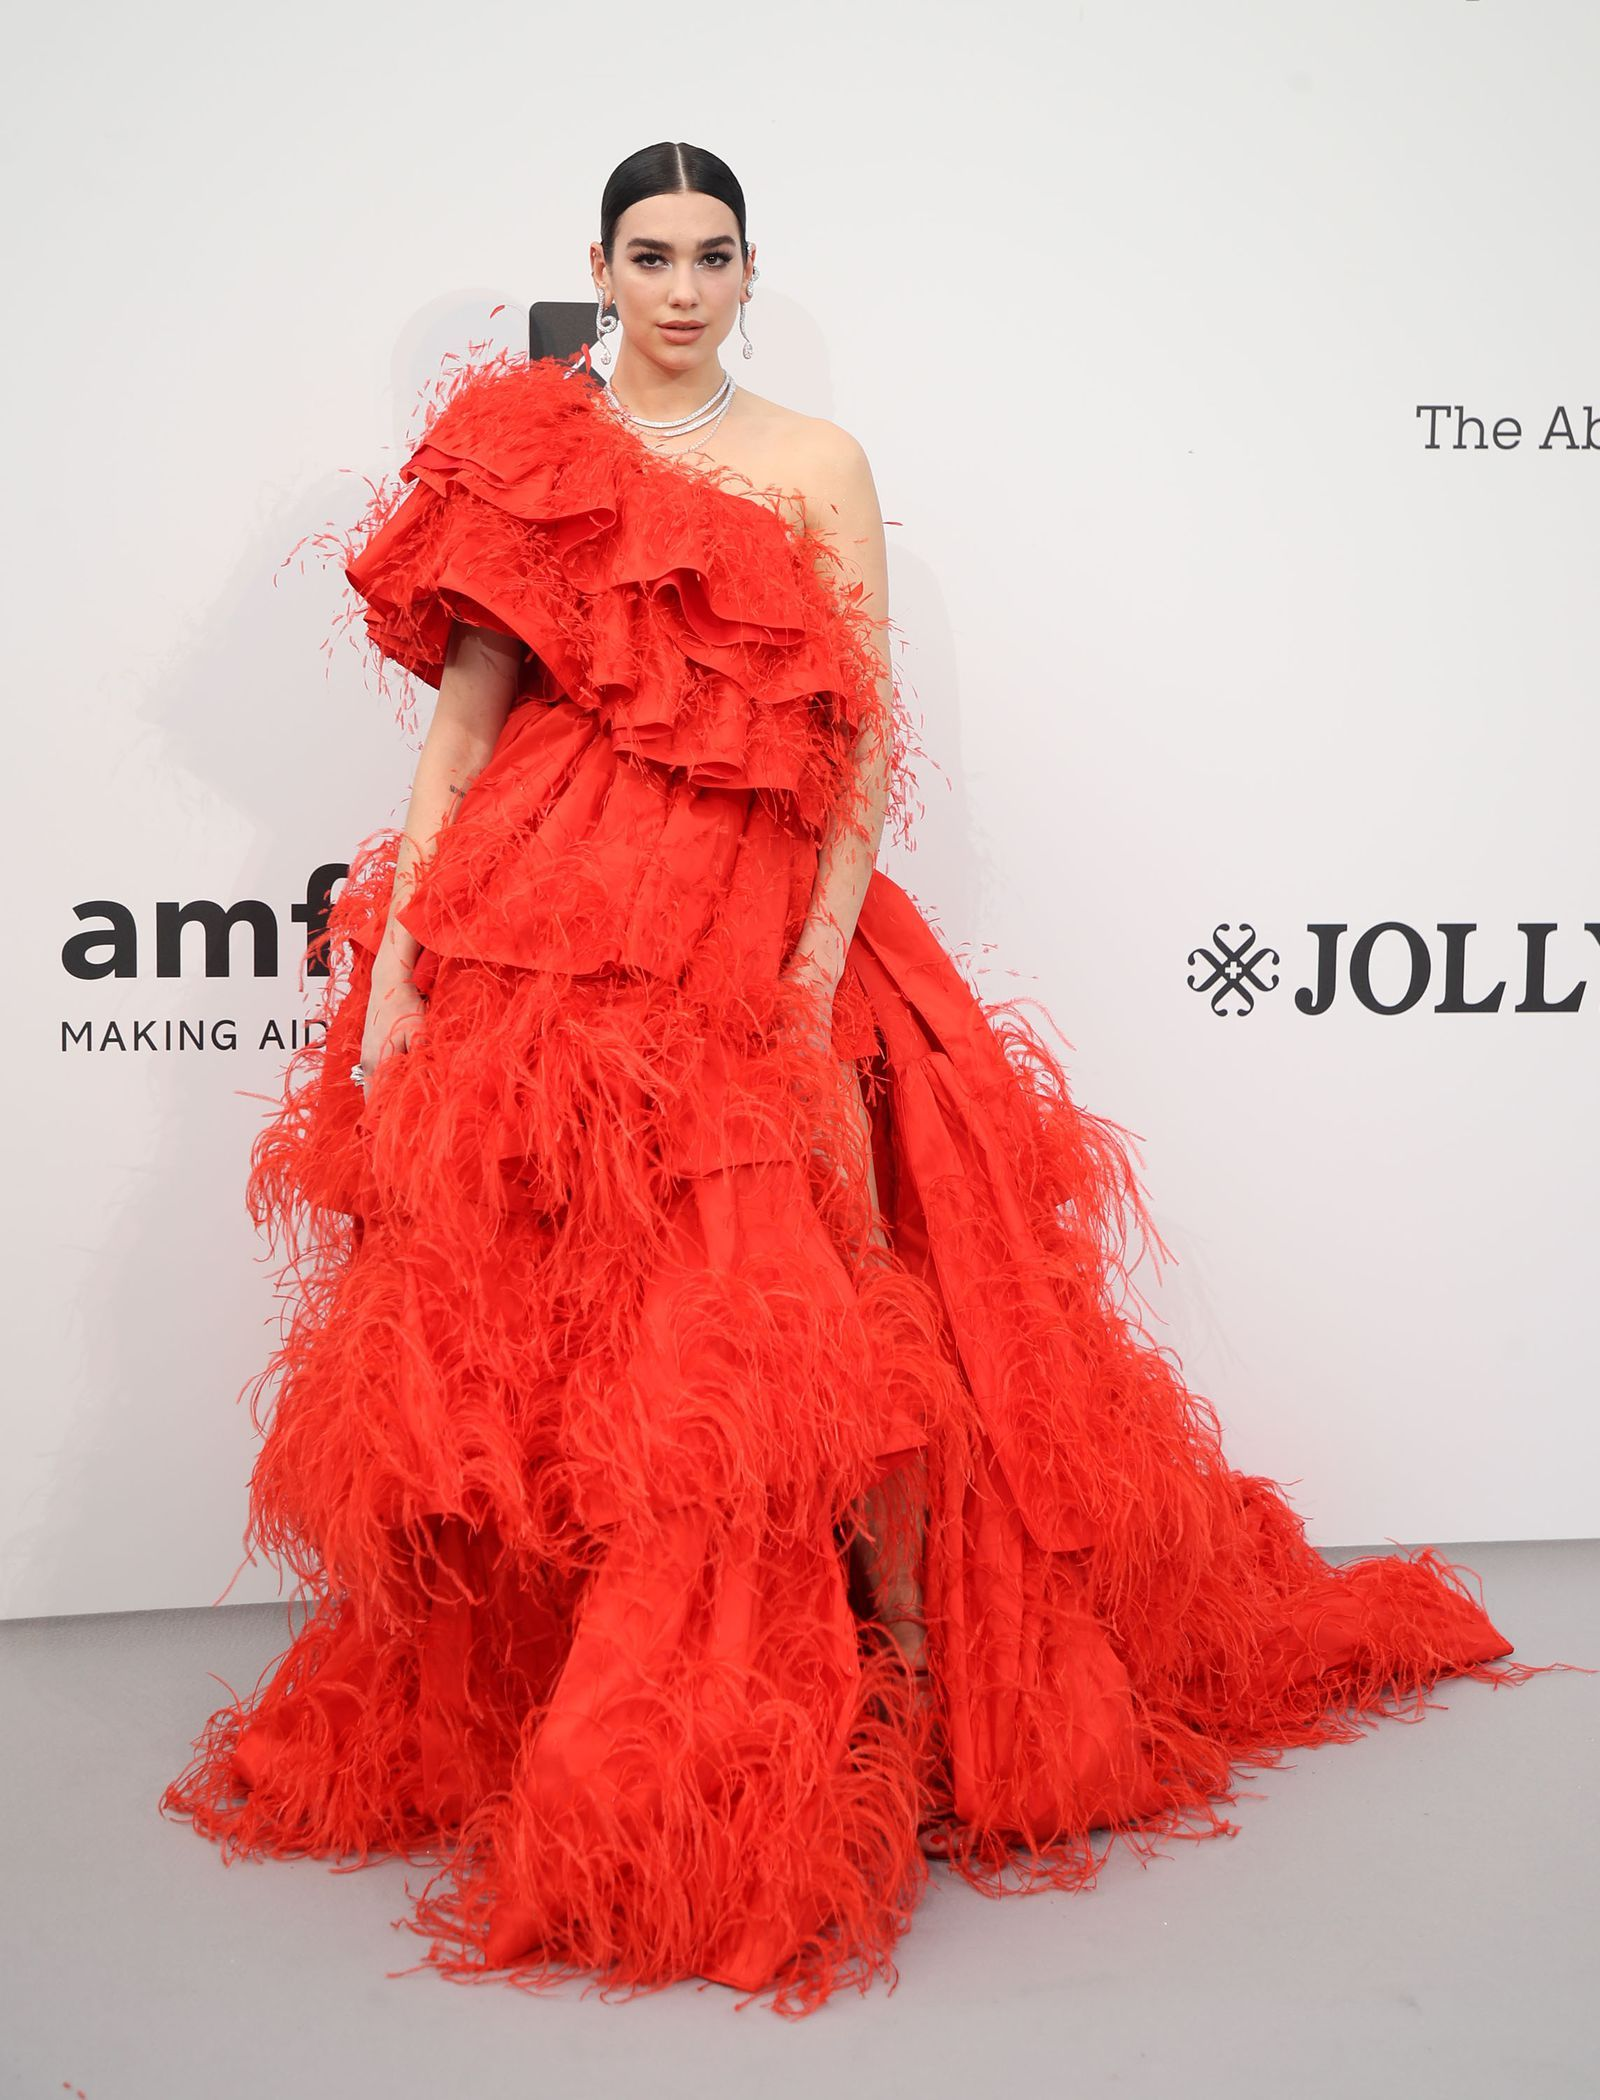 Dua Lipa attends the amfAR Cannes Gala 2019